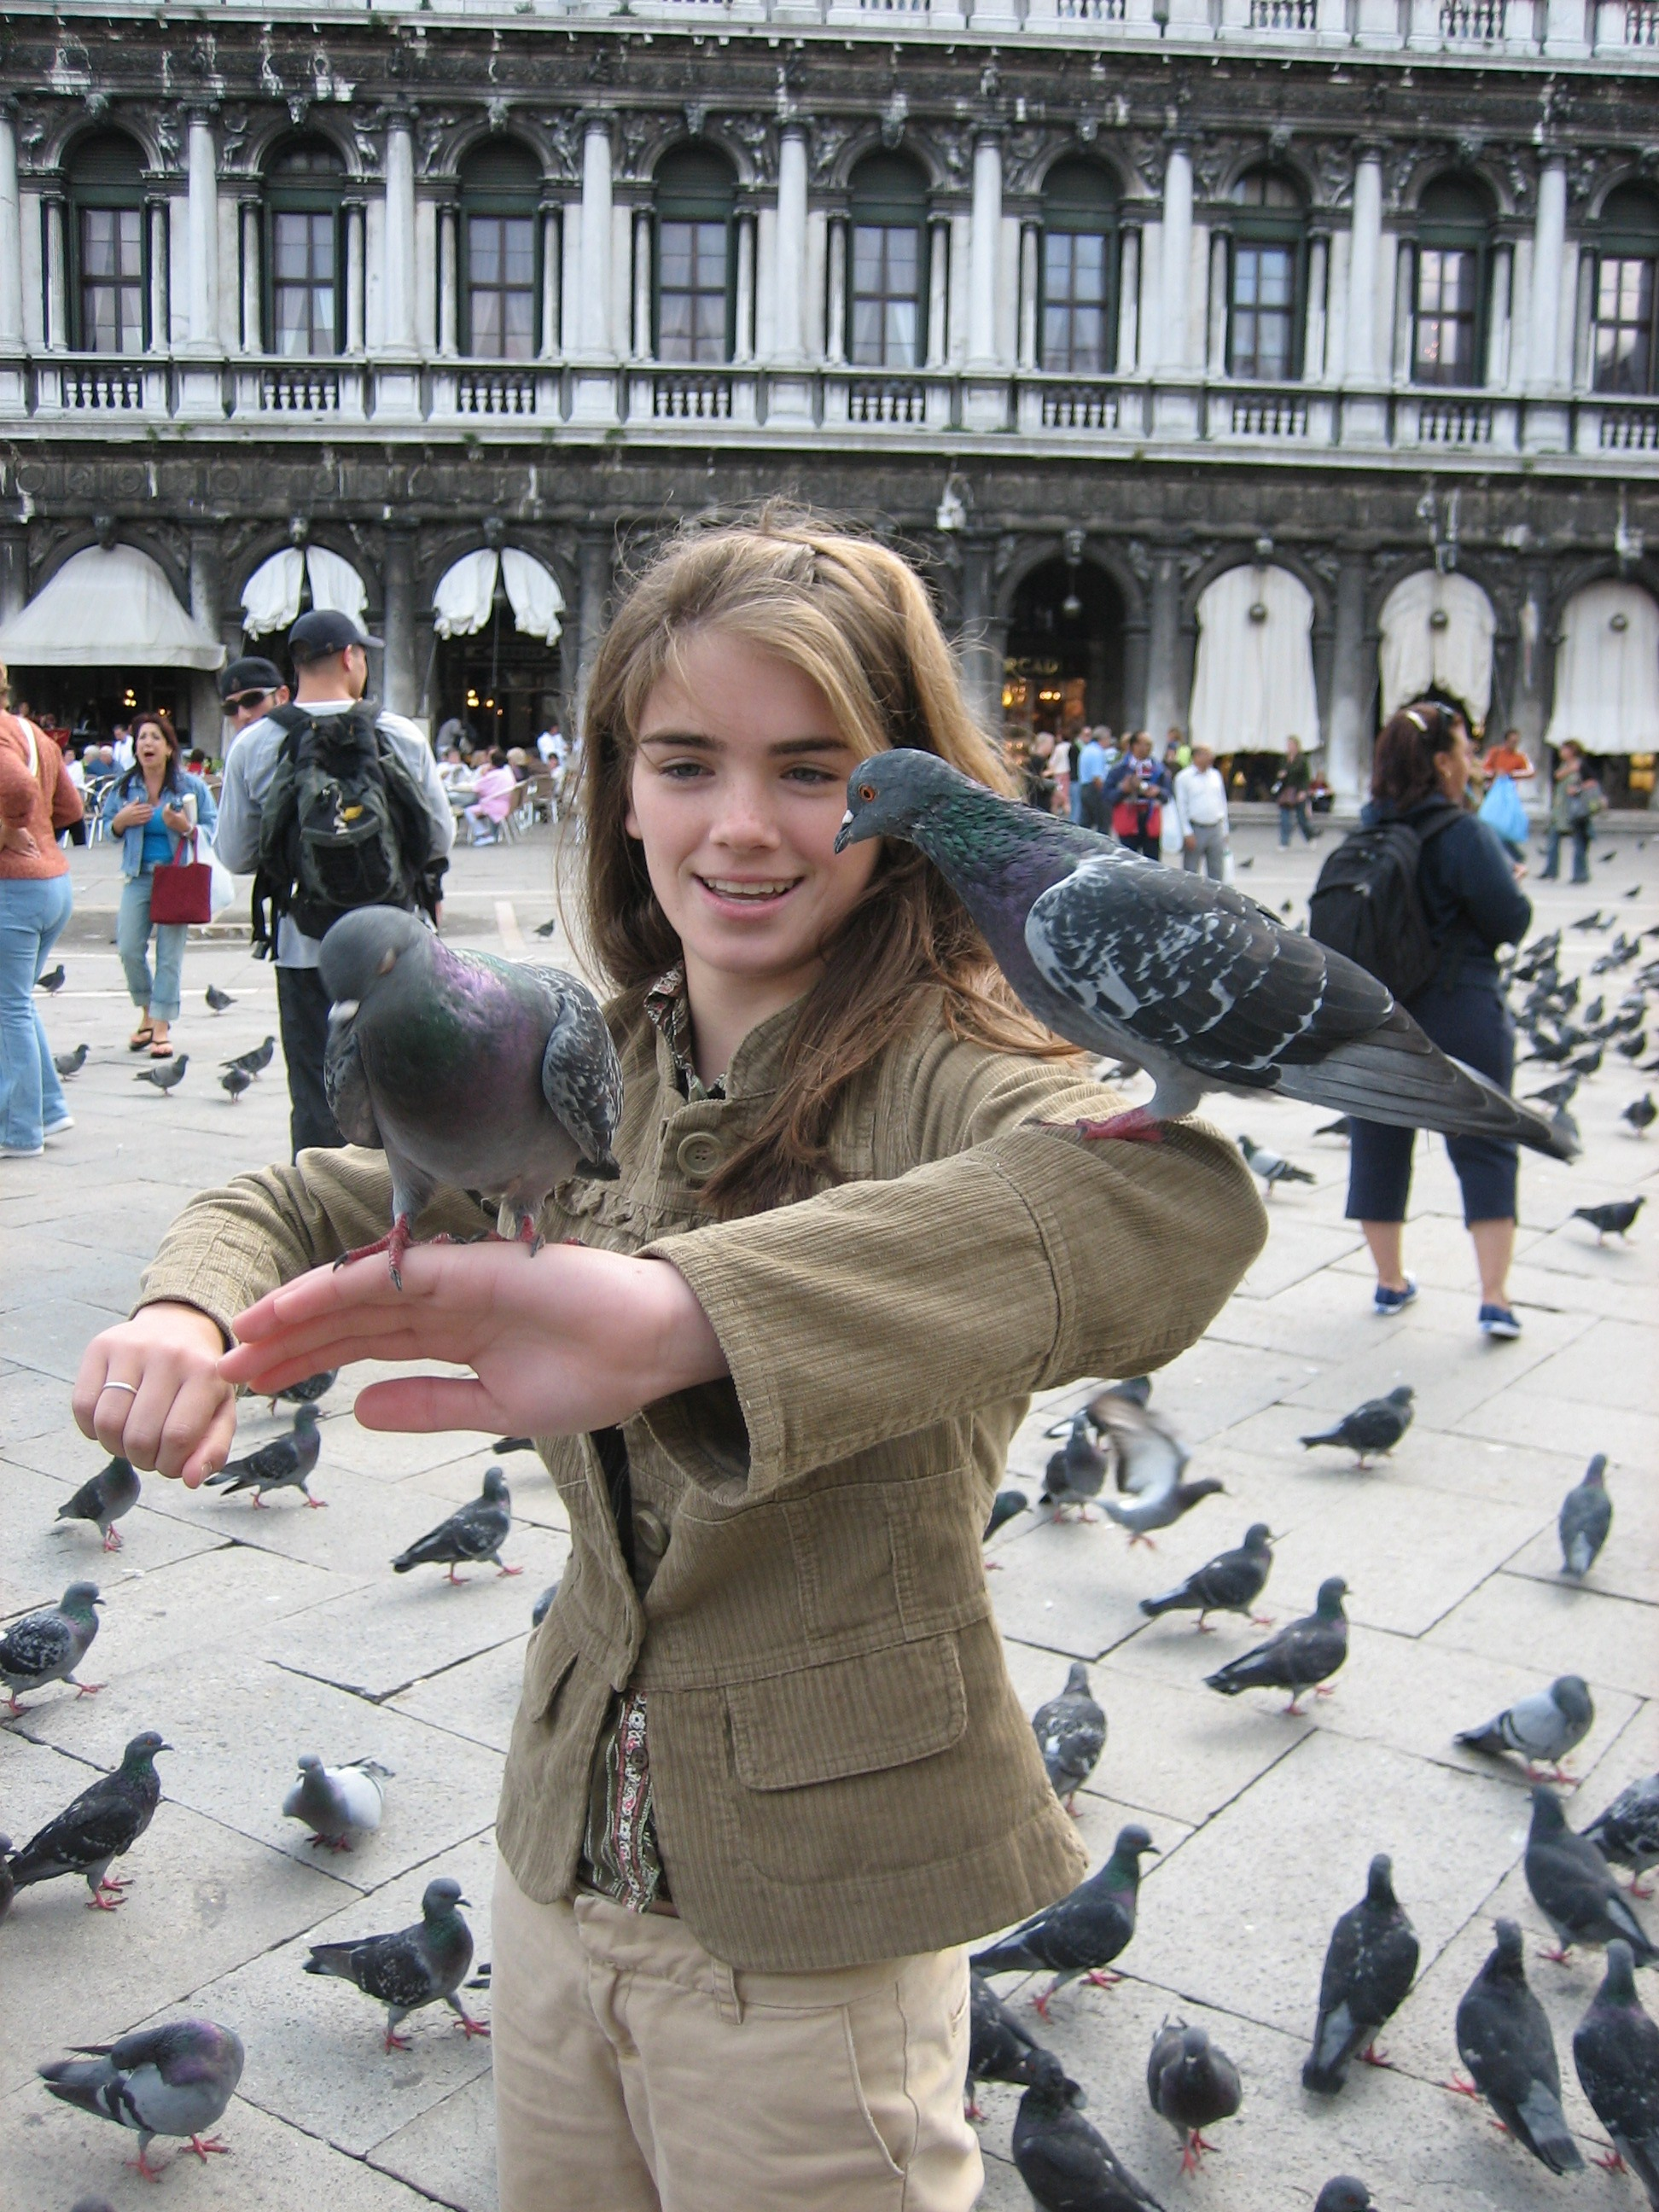 chloe-with-several-pigeon-friends.jpg